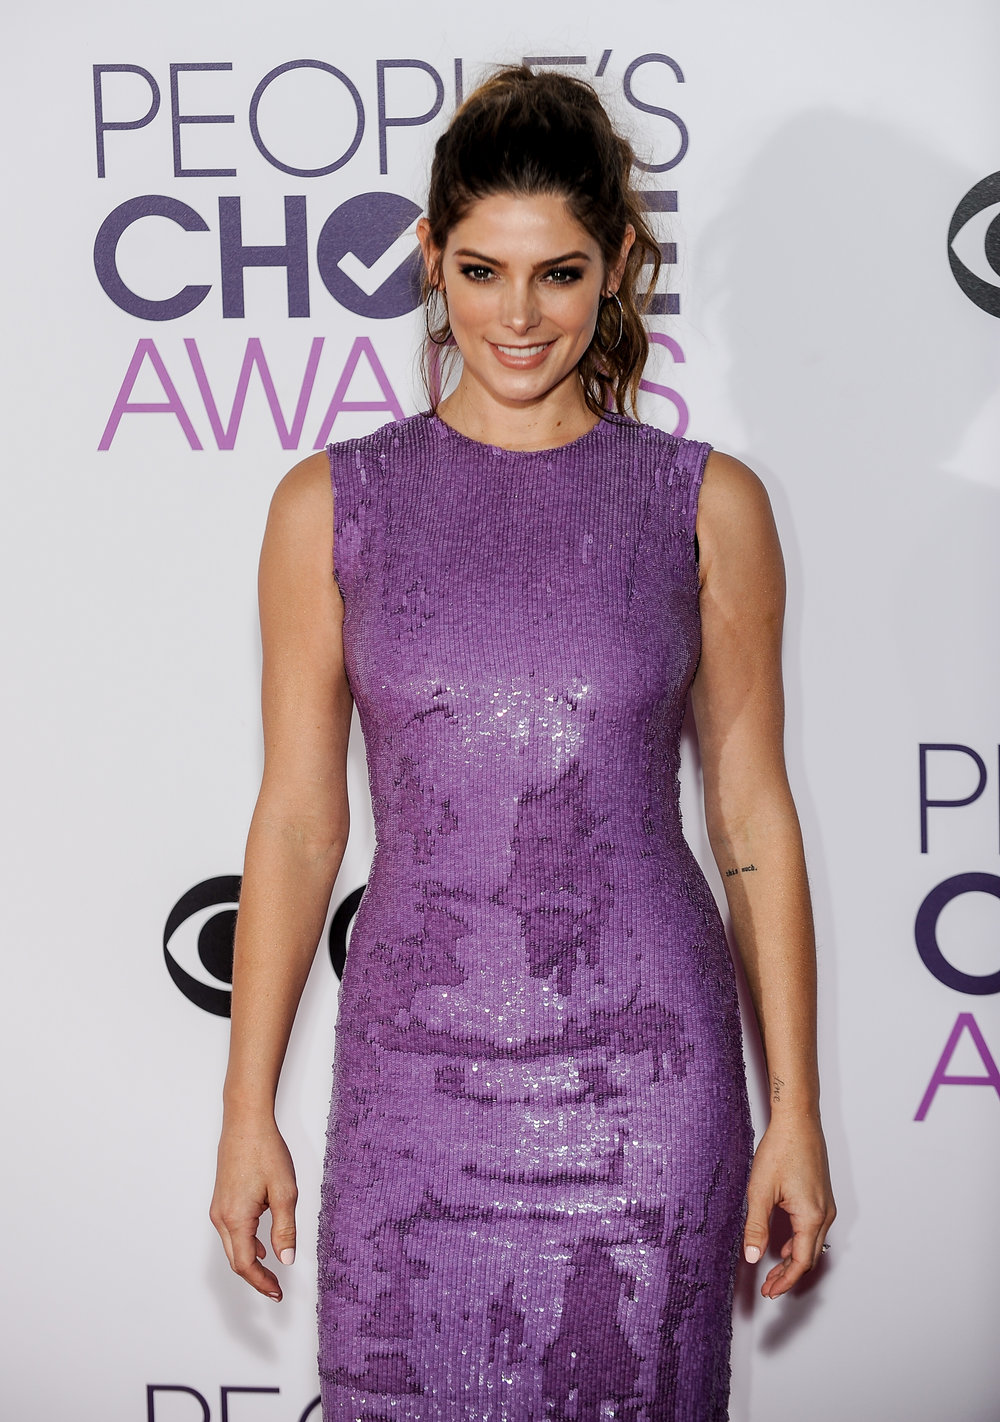 (170119) -- LOS ANGELES, Jan. 19, 2017 (Xinhua) -- Ashley Greene arrives for the People's Choice Awards at the Microsoft Theater in Los Angeles, the United States, Jan. 18, 2017. (Xinhua/Zhang Chaoqun) (djj)